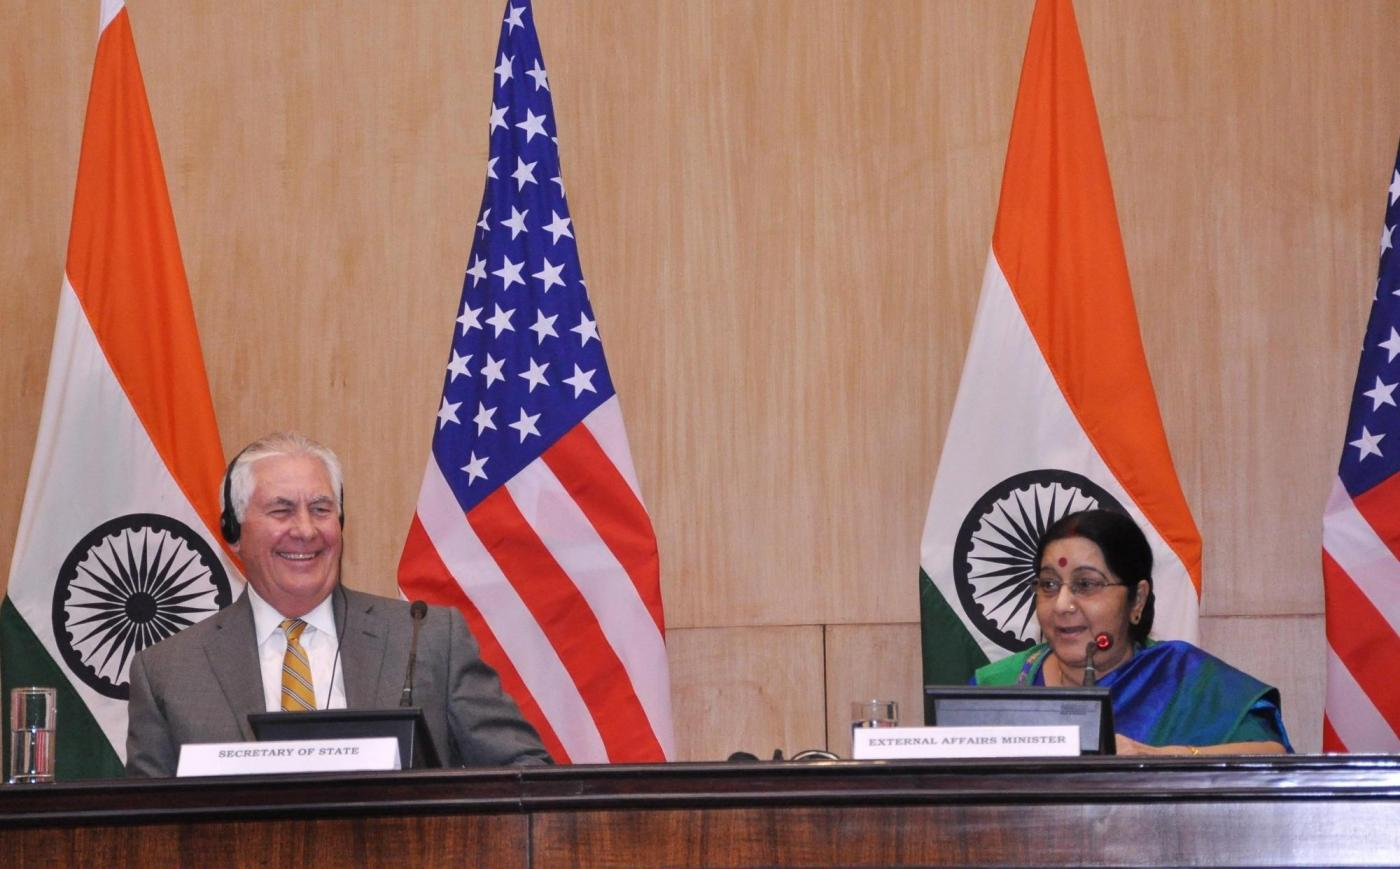 New Delhi: External Affairs Minister Sushma Swaraj and US Secretary of State Rex Tillerson during a joint press conference in New Delhi on Oct 25, 2017. (Photo: IANS) by .